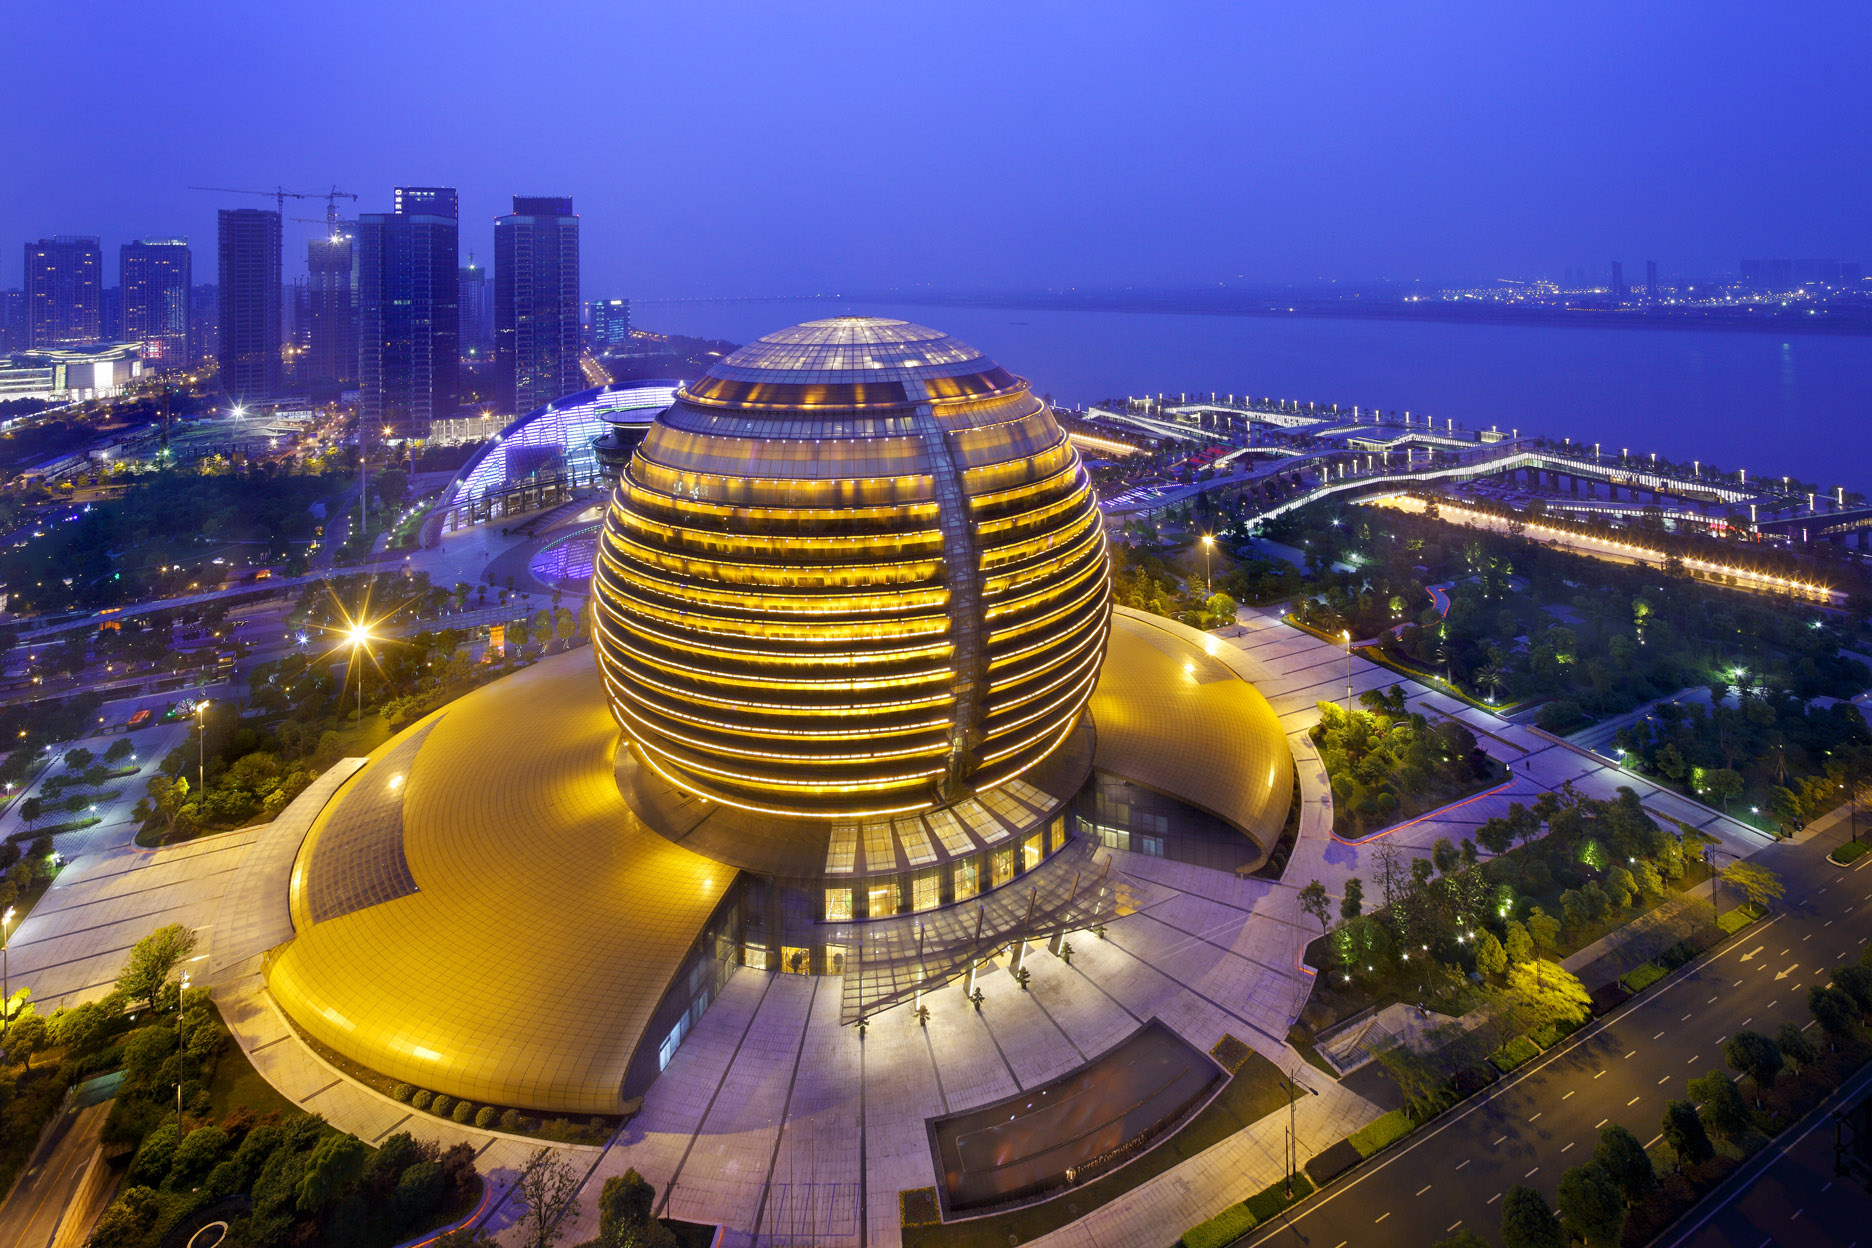 Hangzhou International Conference Center/Intercontinental Hotel